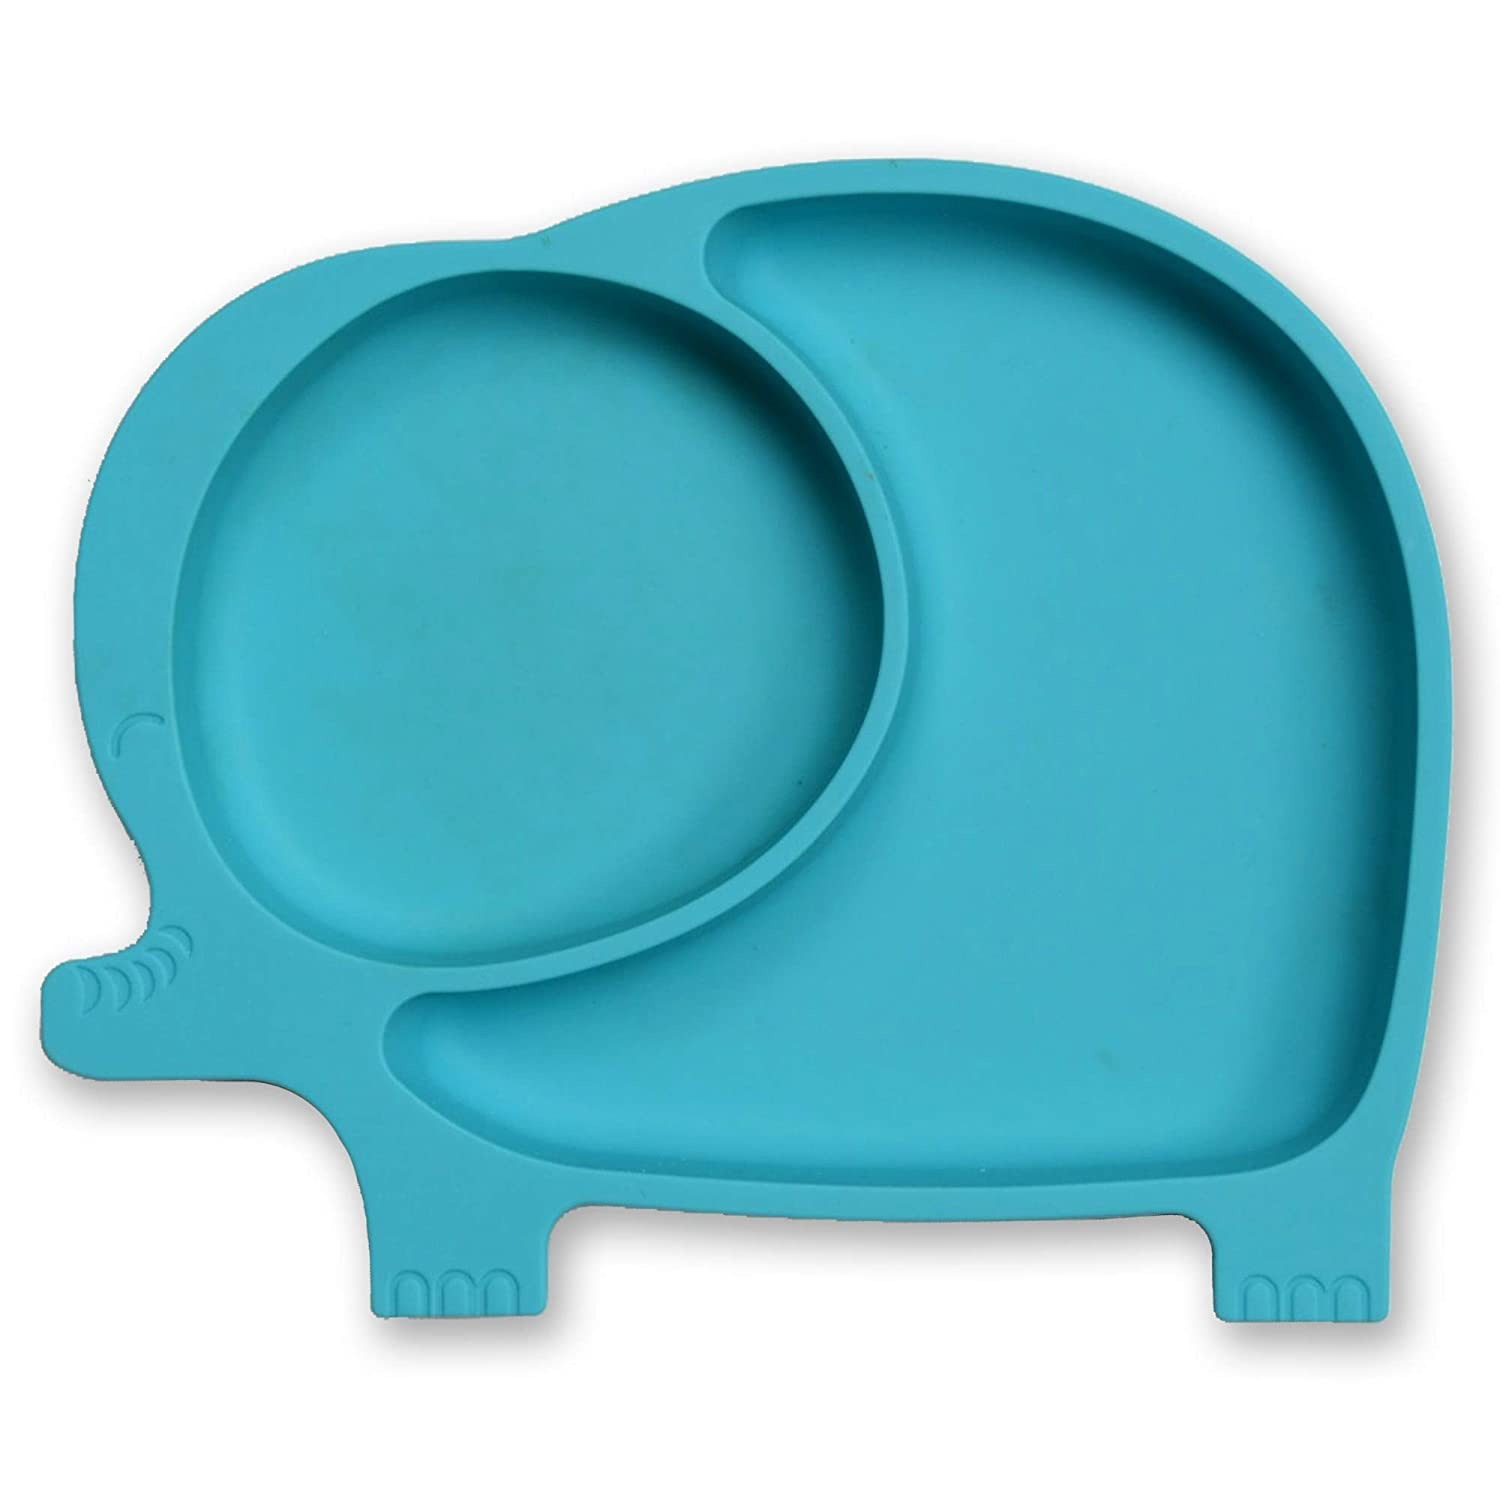 Silicone Suction Plate | Divided Plate for Babies, Toddlers, Kids | Plate Stays Put with Strong Suction Base | 100% Silicone, BPA, Phthalate, PVC, BPS & Latex Free | Microwave, Dishwasher, Oven Safe